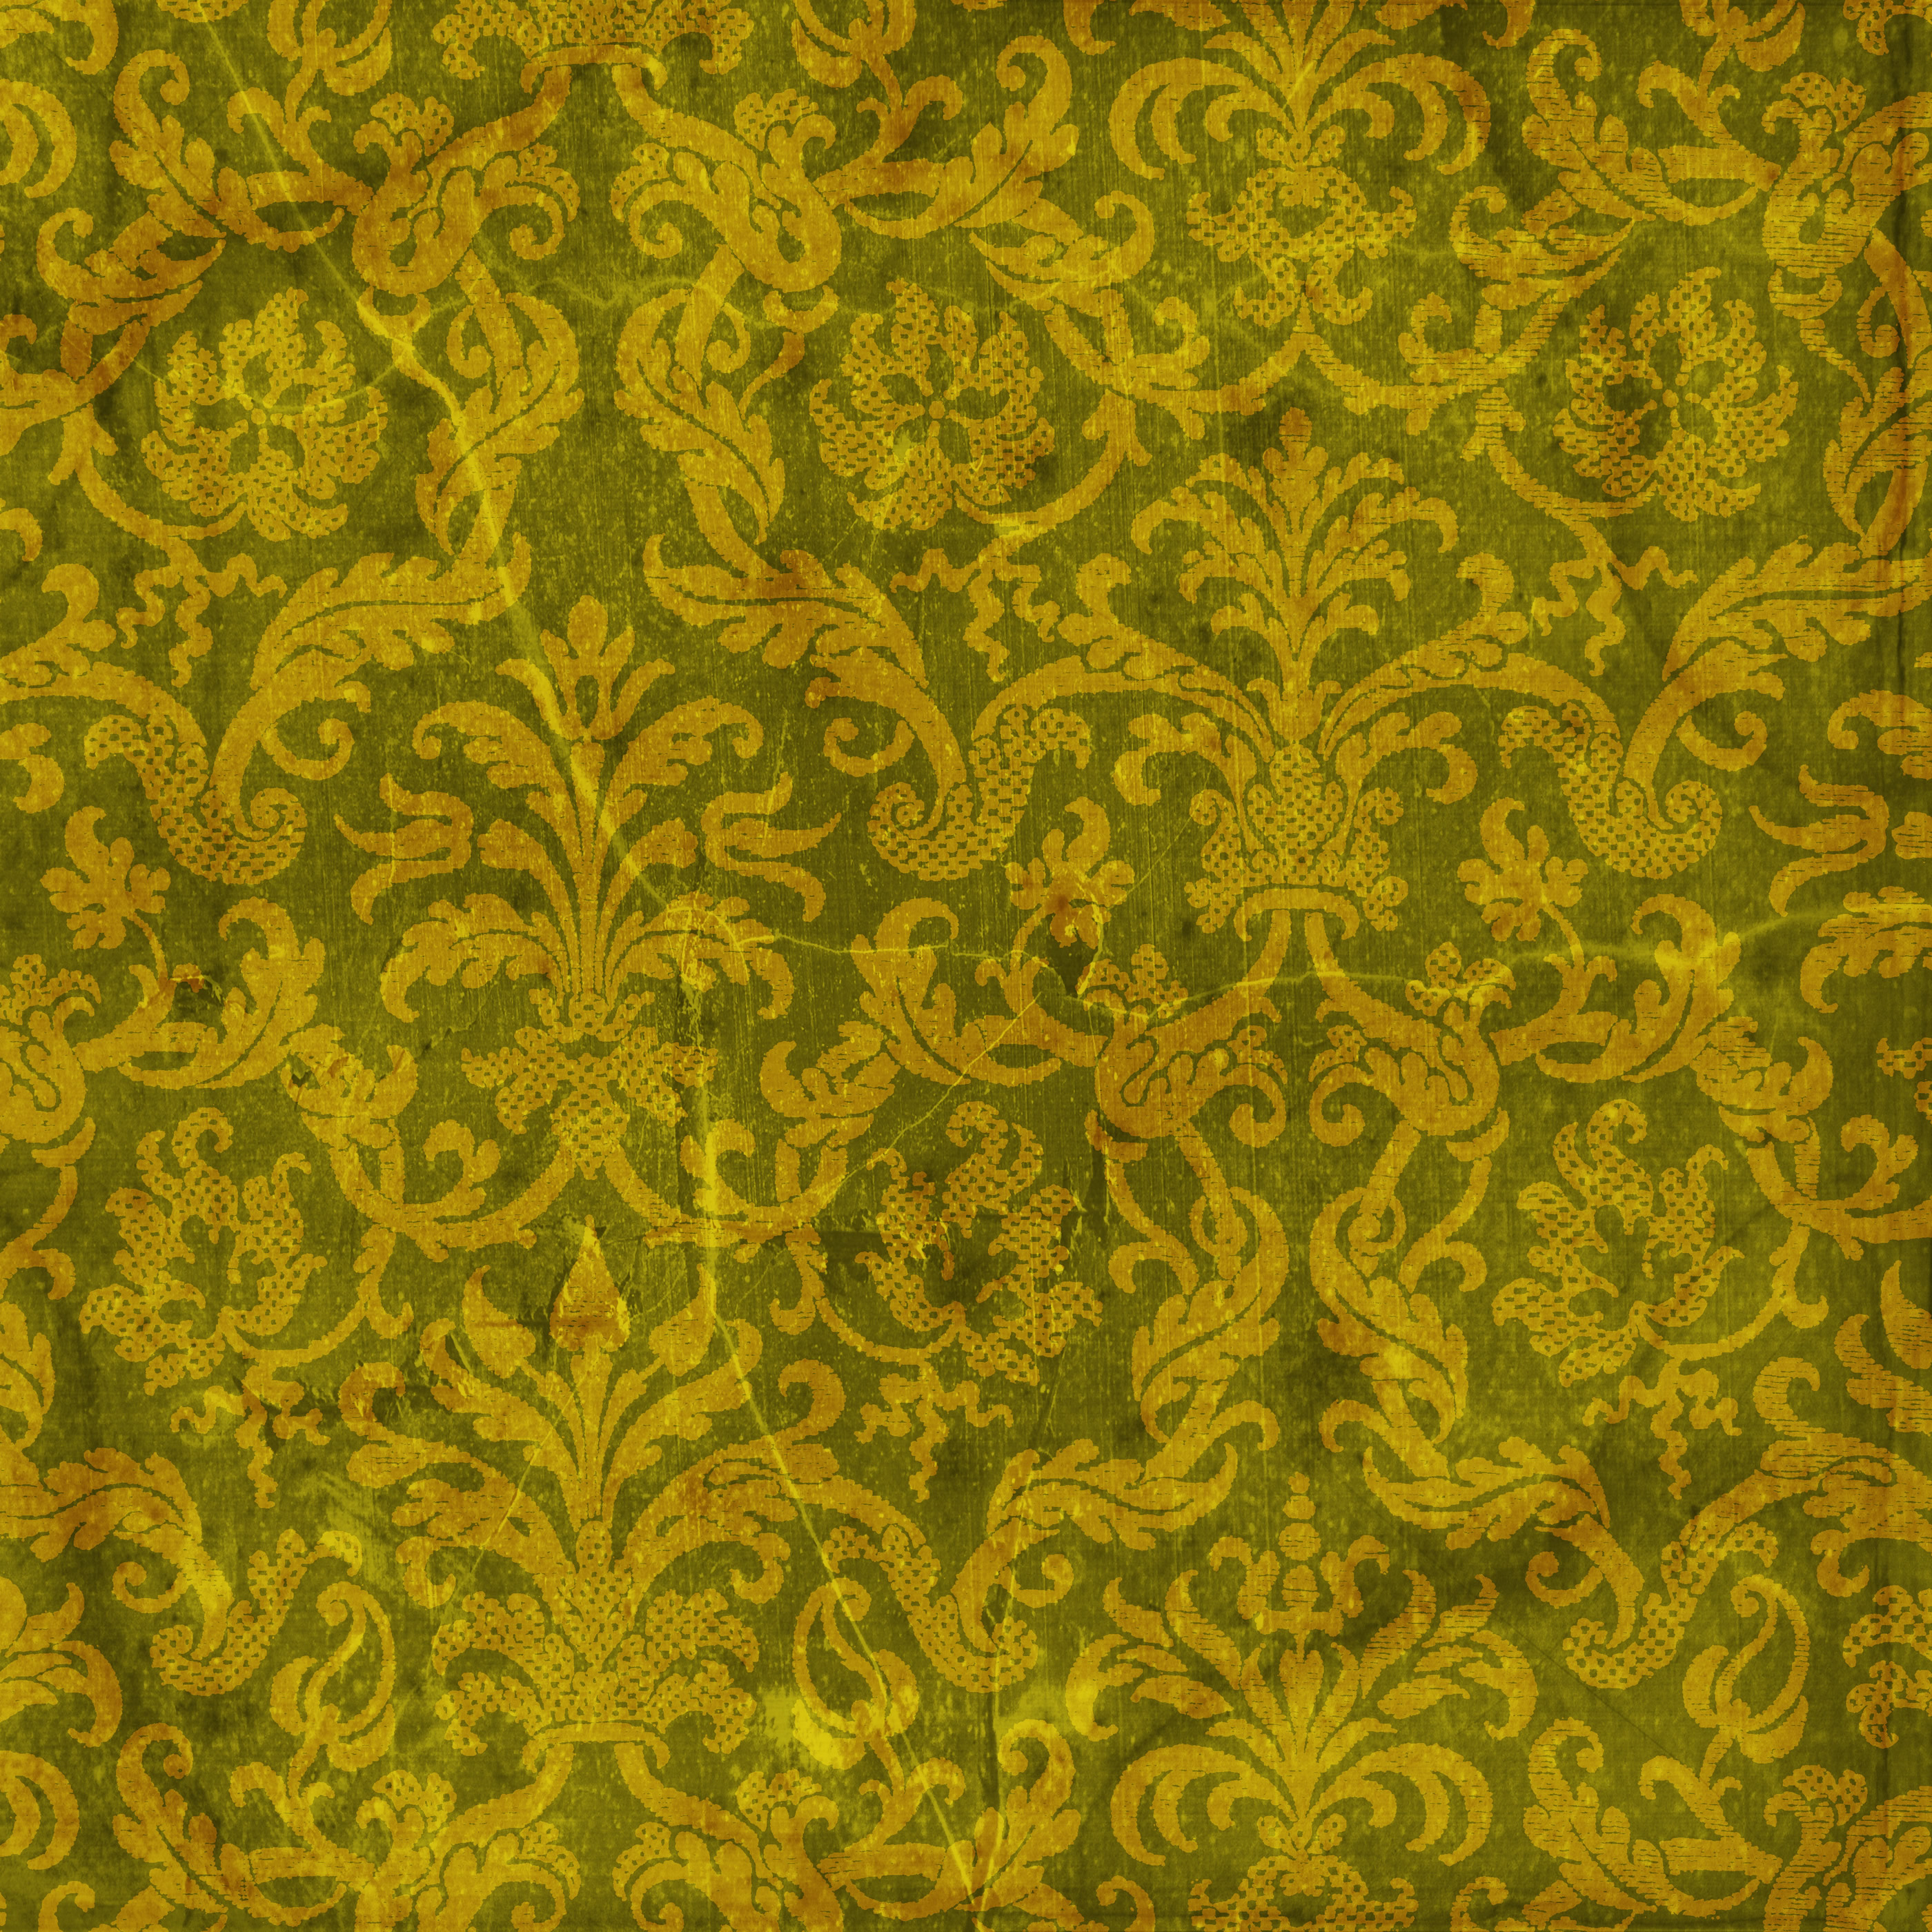 colorfull template, download background, texture, photo, yellow pattern background